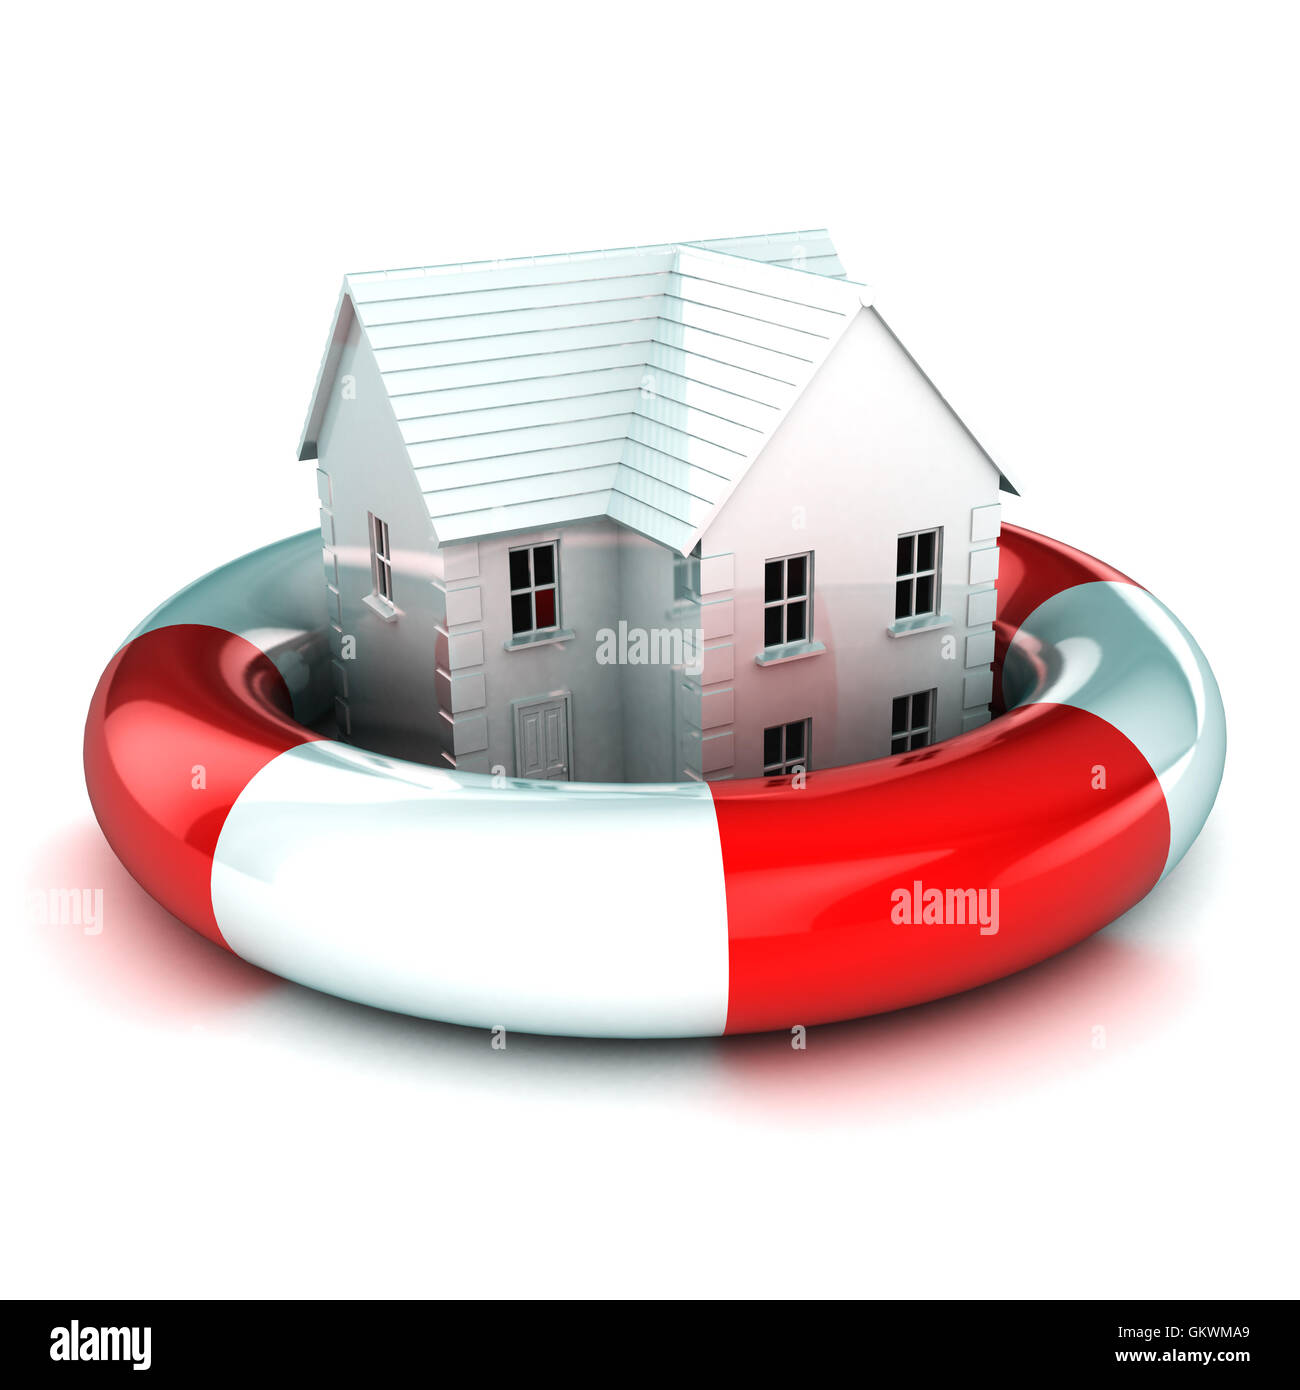 House in a Lifebuoy - Stock Image